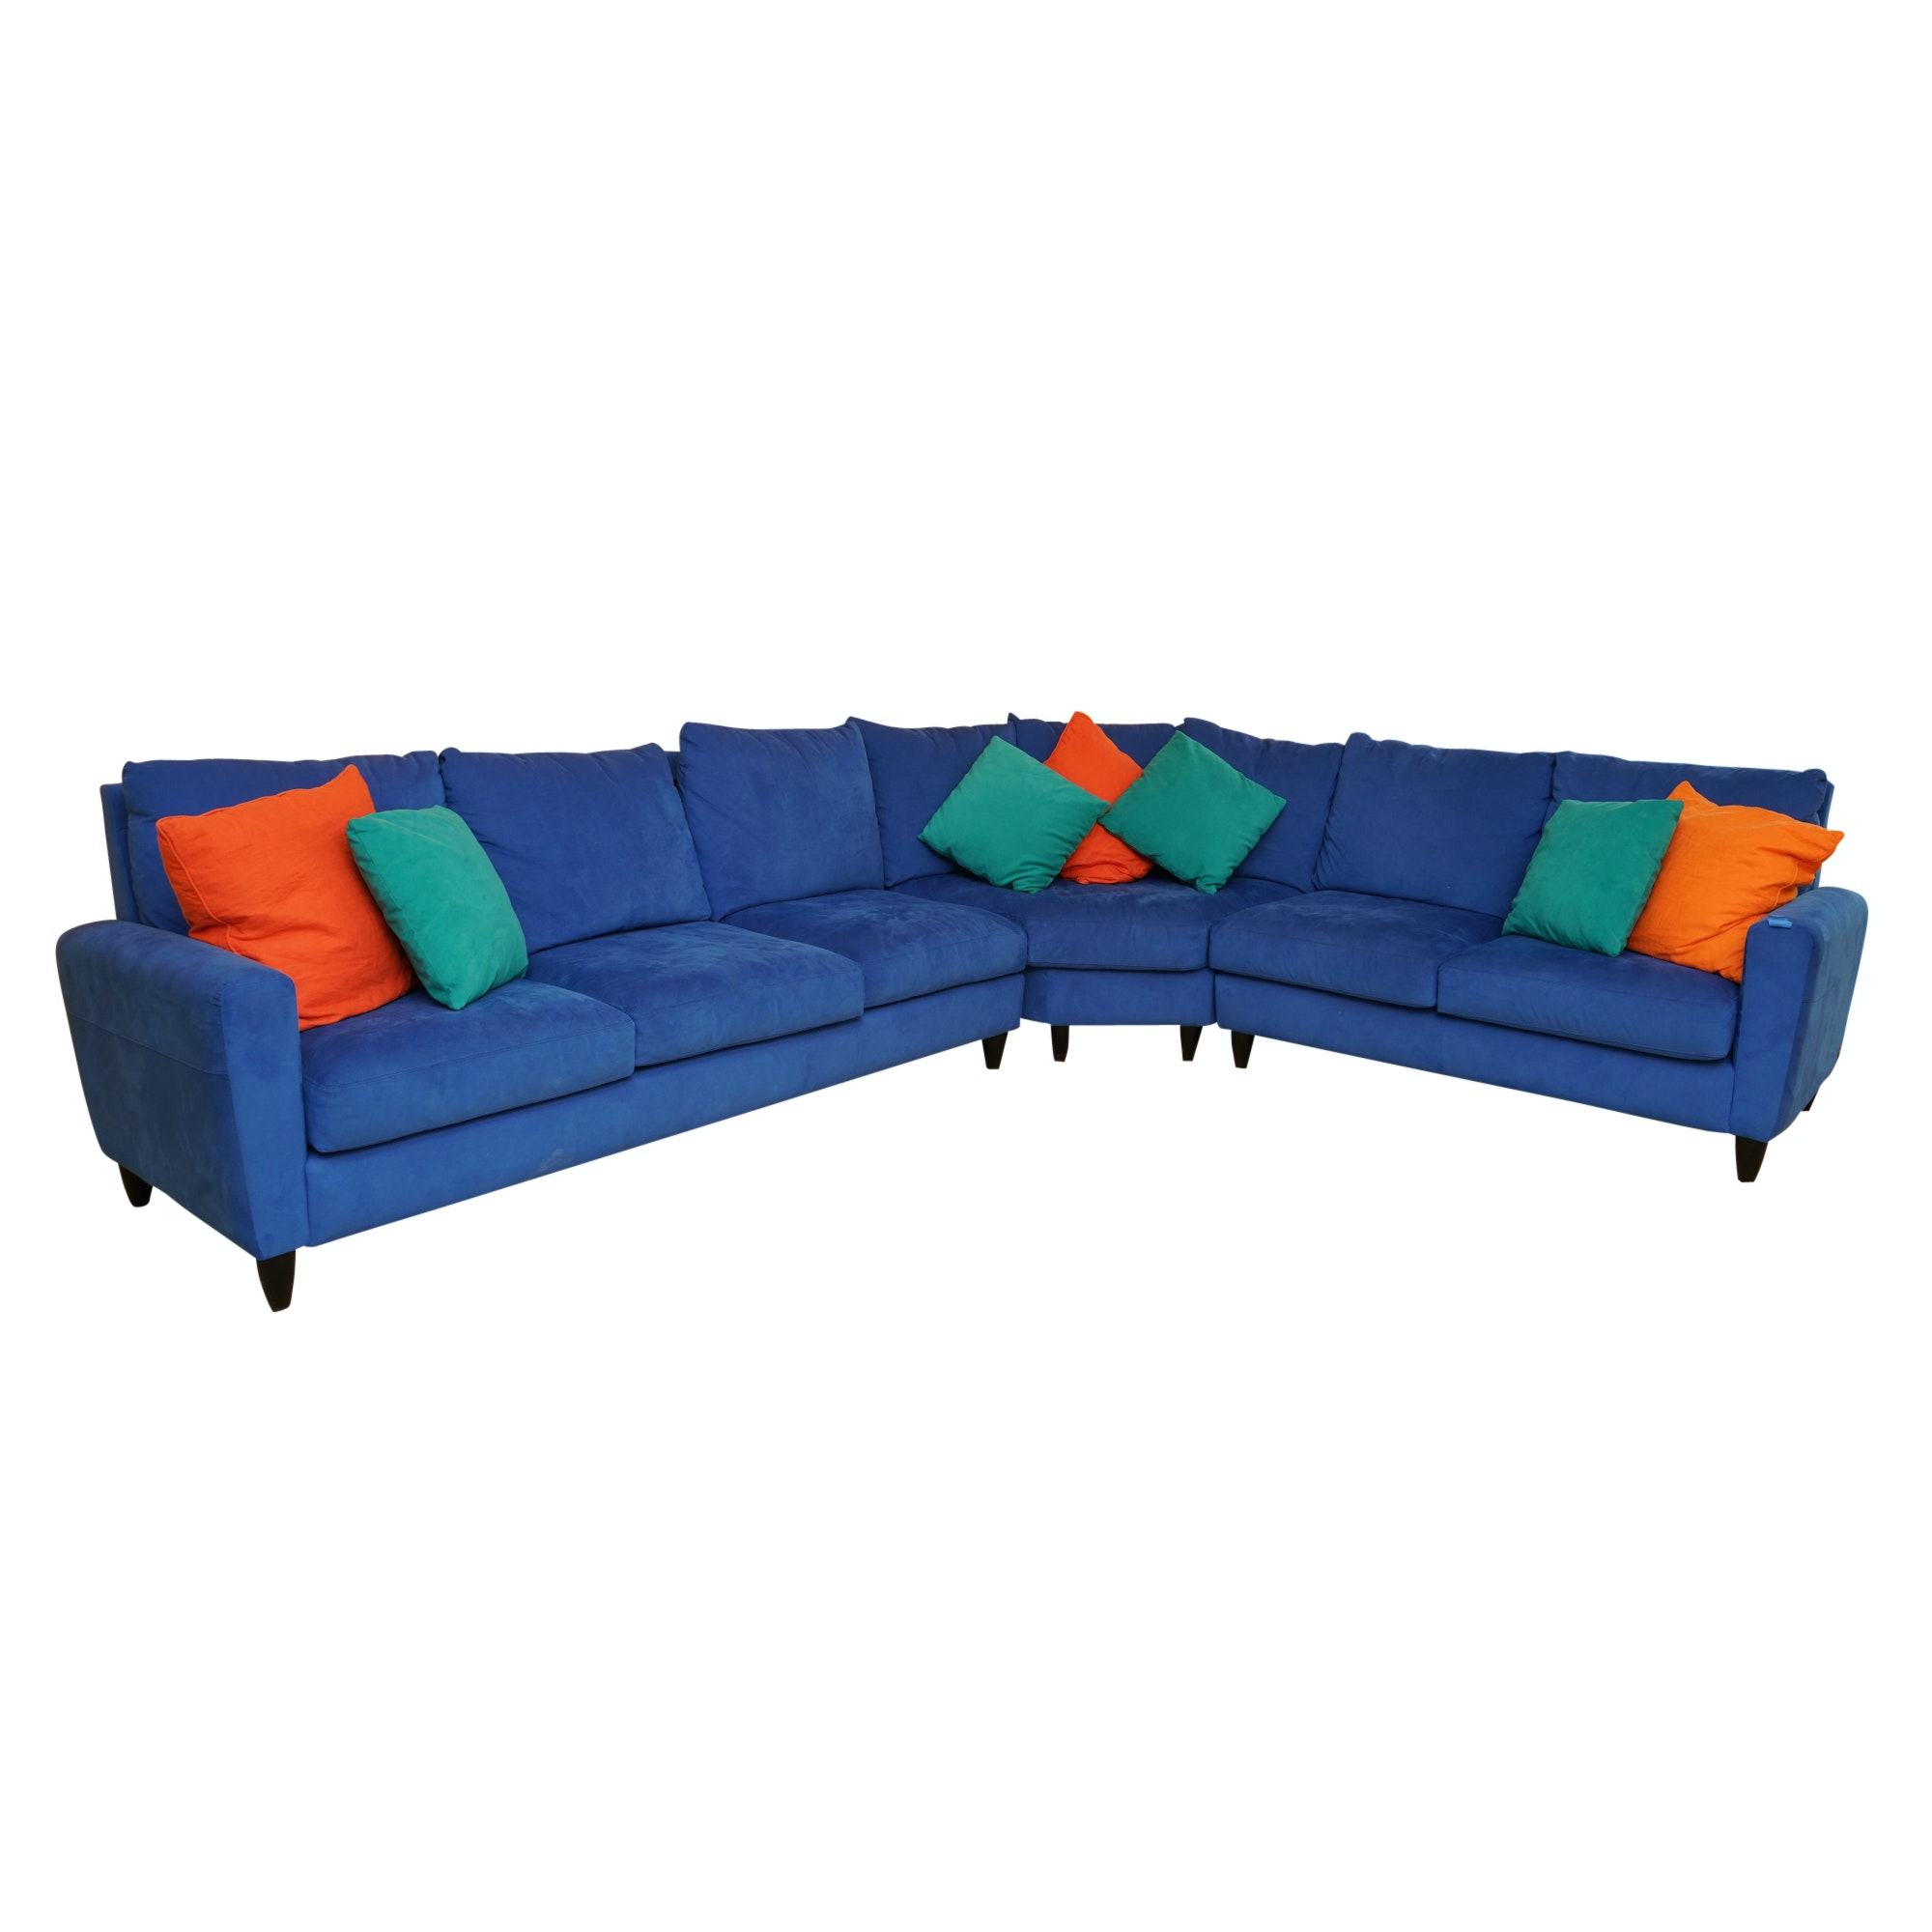 Blue Suede Sectional Sofa by American Leather